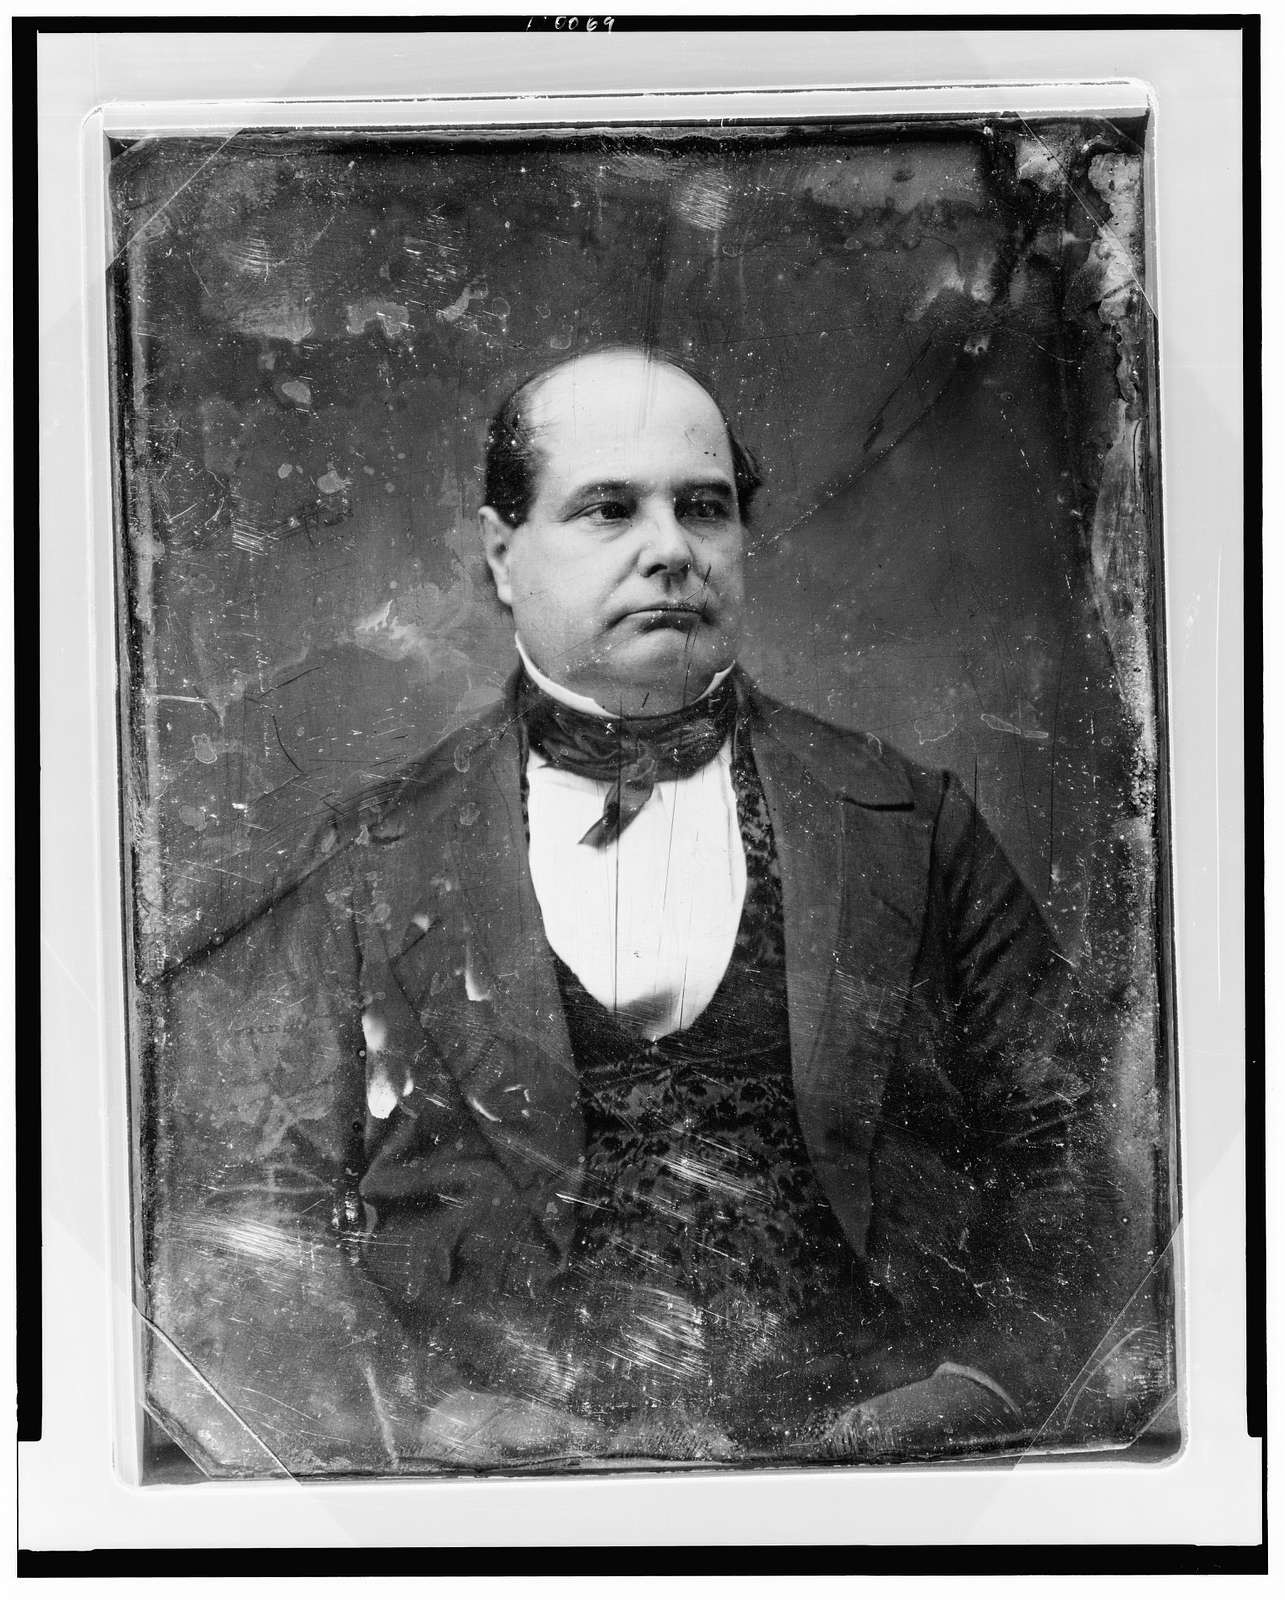 [Unidentified man, about 40 years of age, half-length portrait, nearly facing front, head slightly to the right]